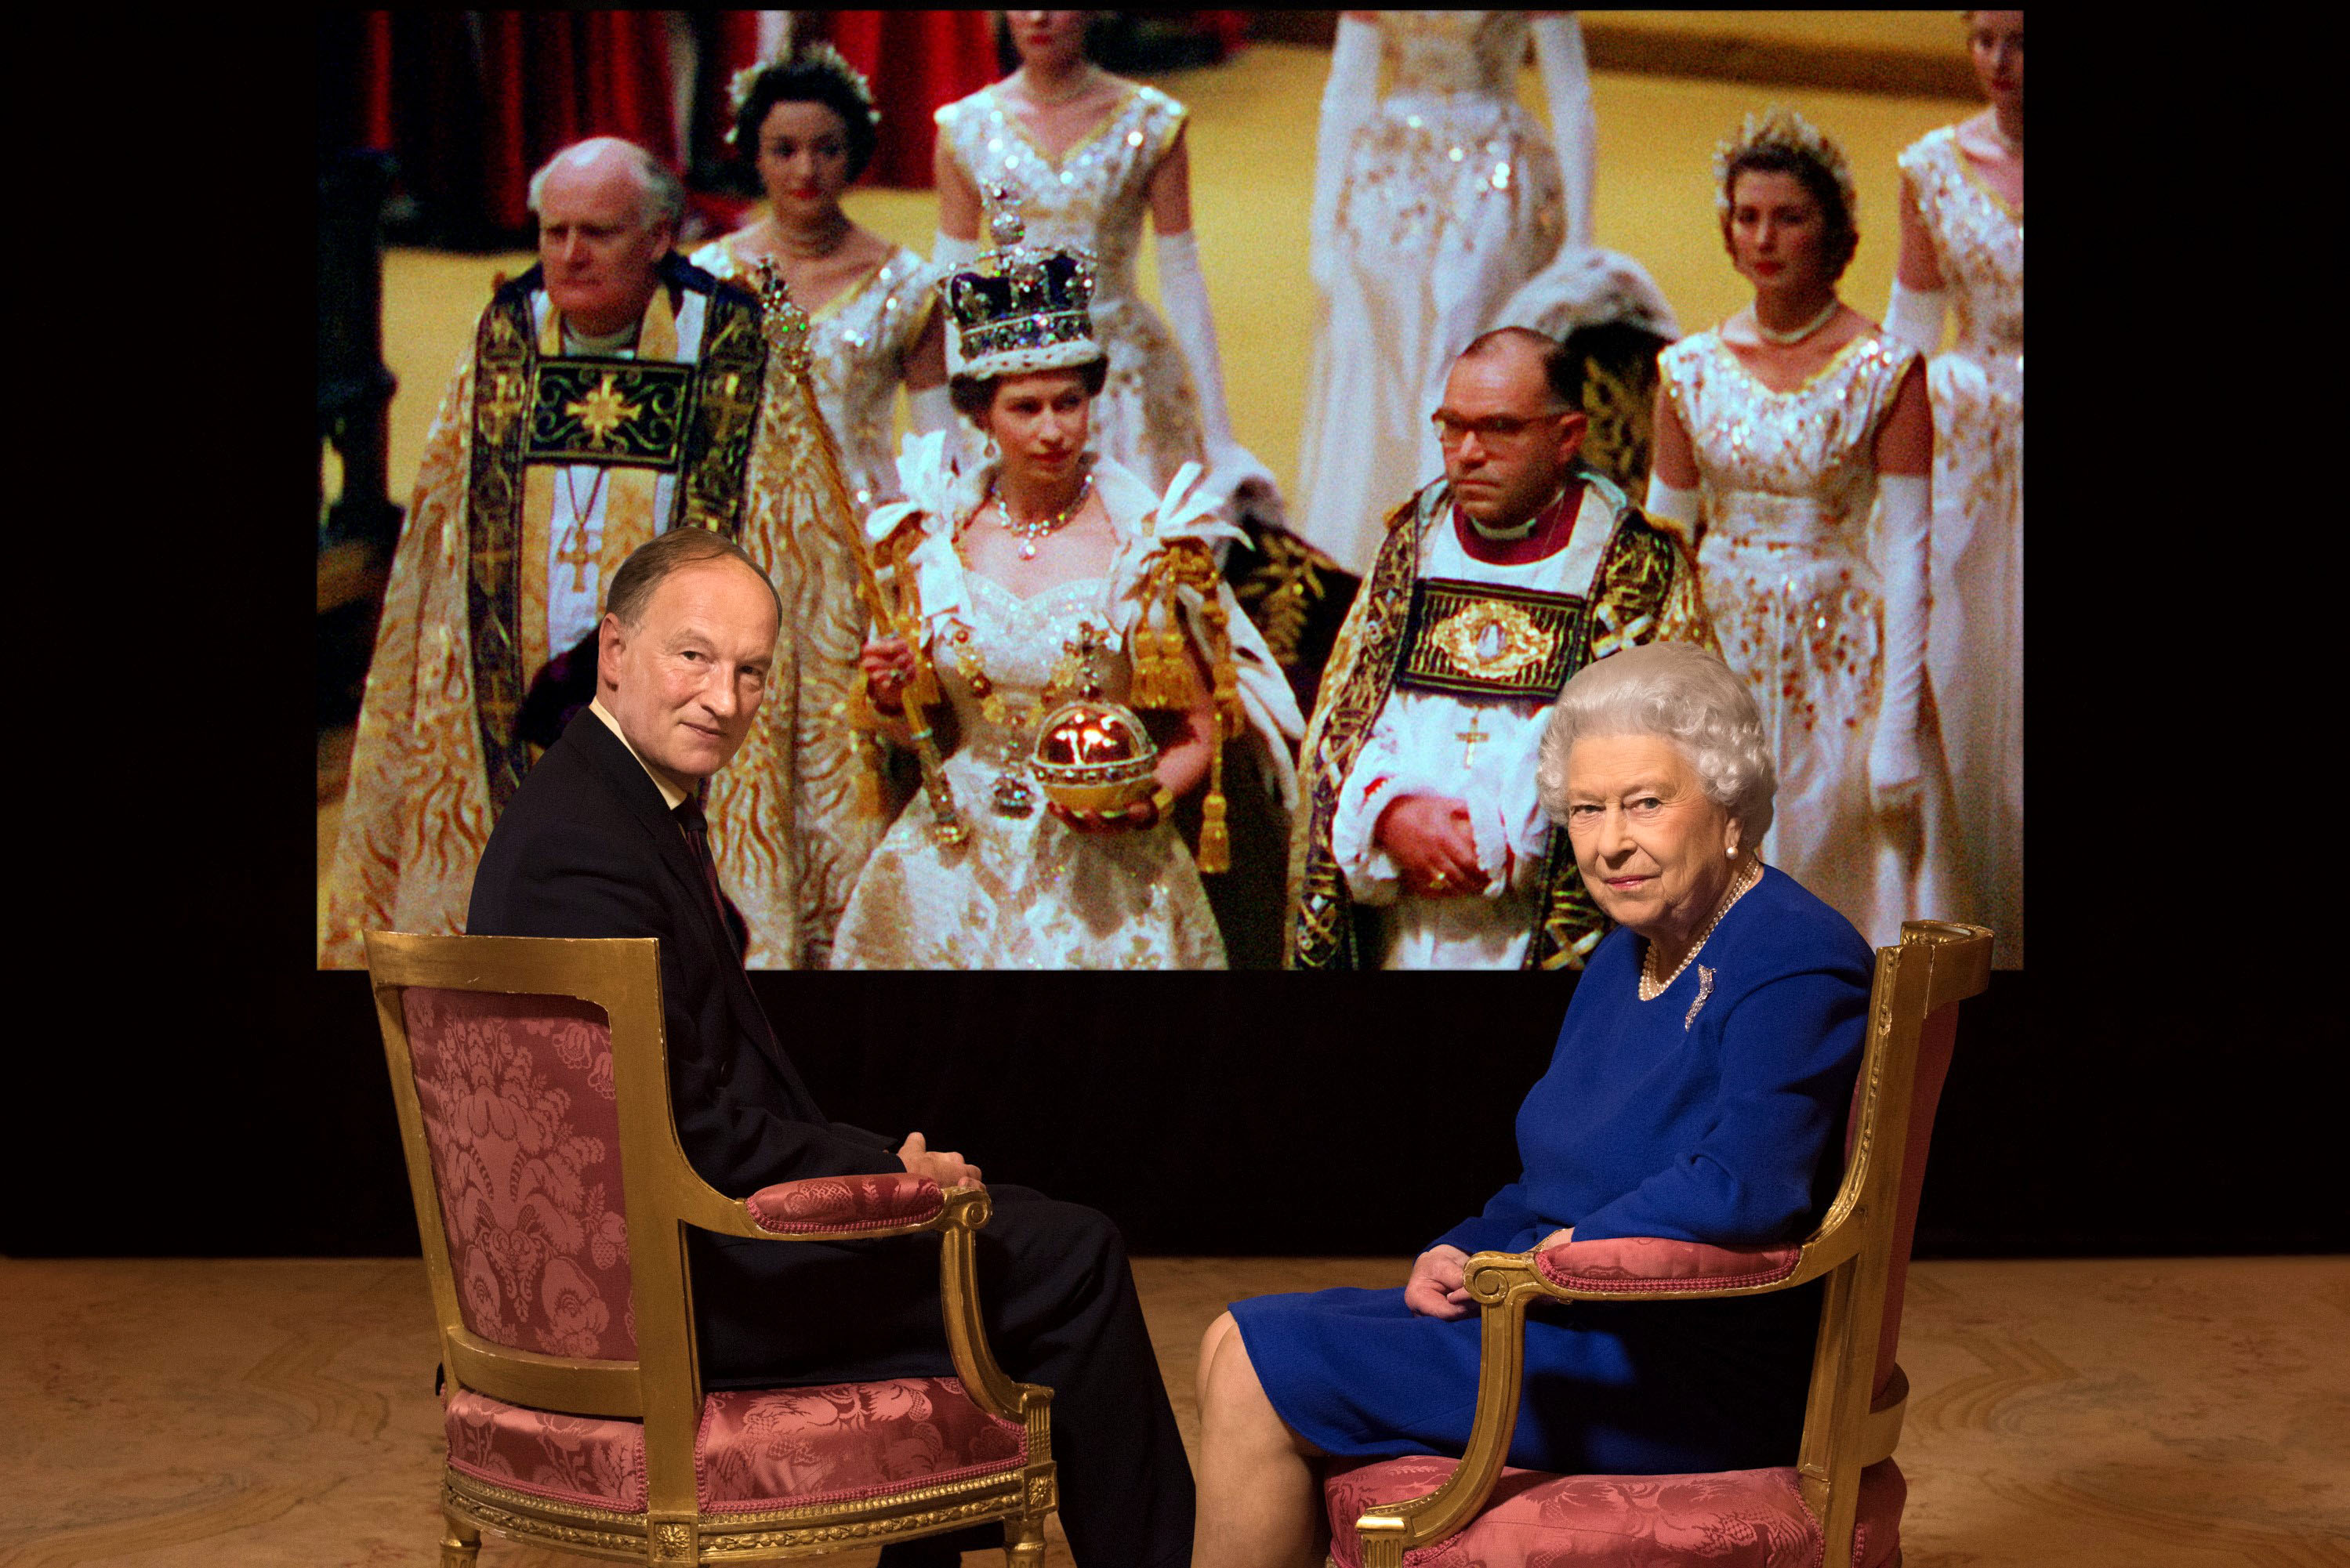 Queen gives rare personal account of her coronation in BBC documentary